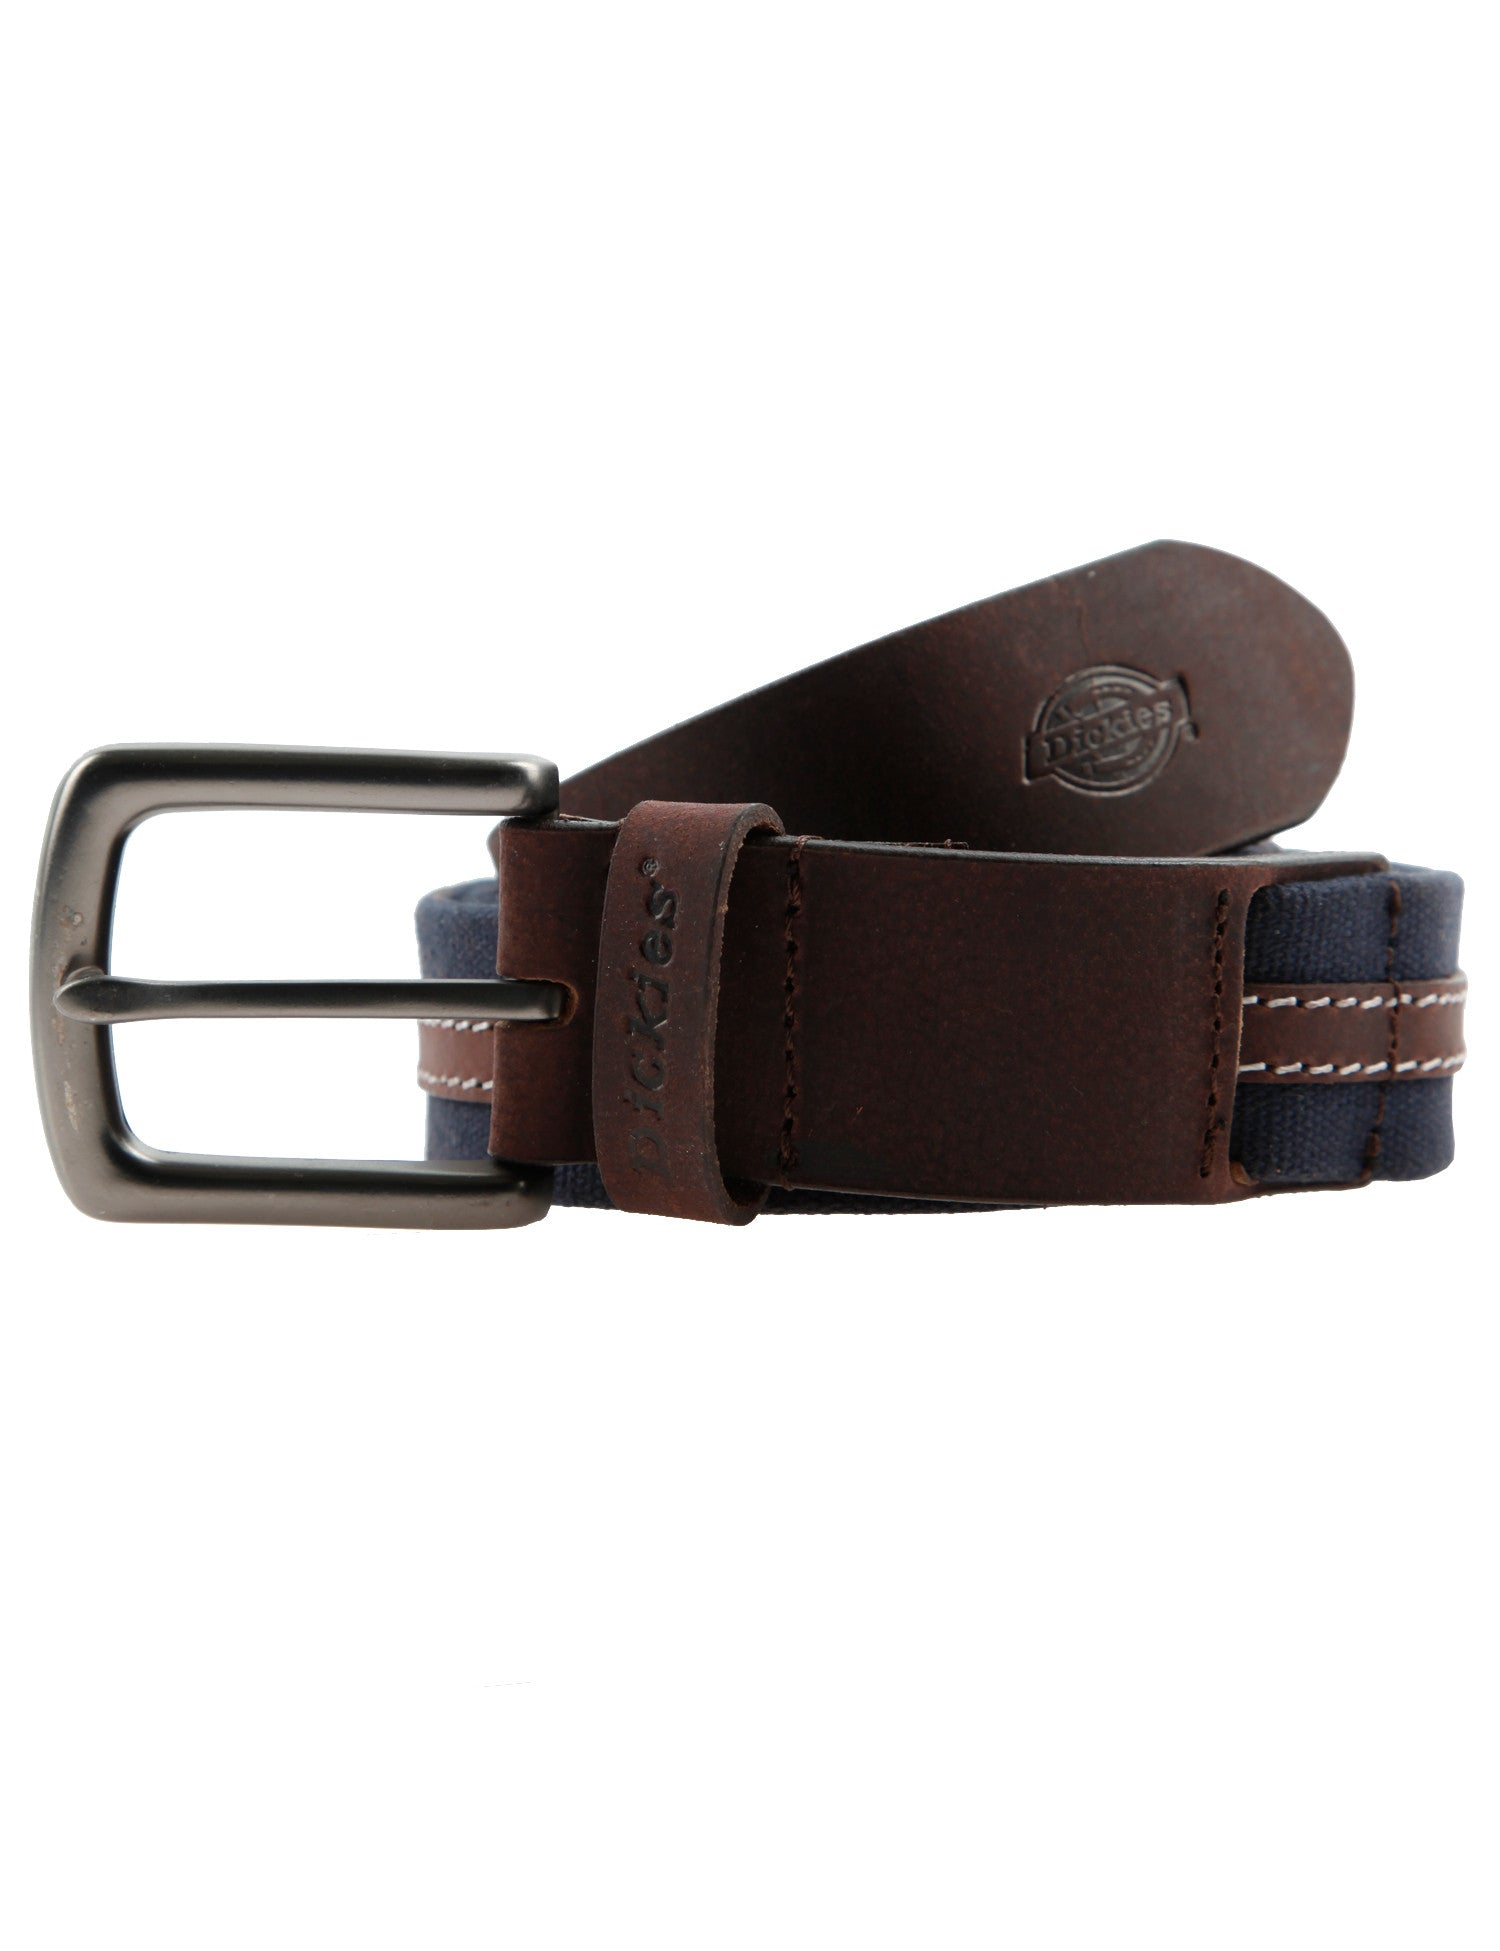 Dickies Catalina Island Belt Navy